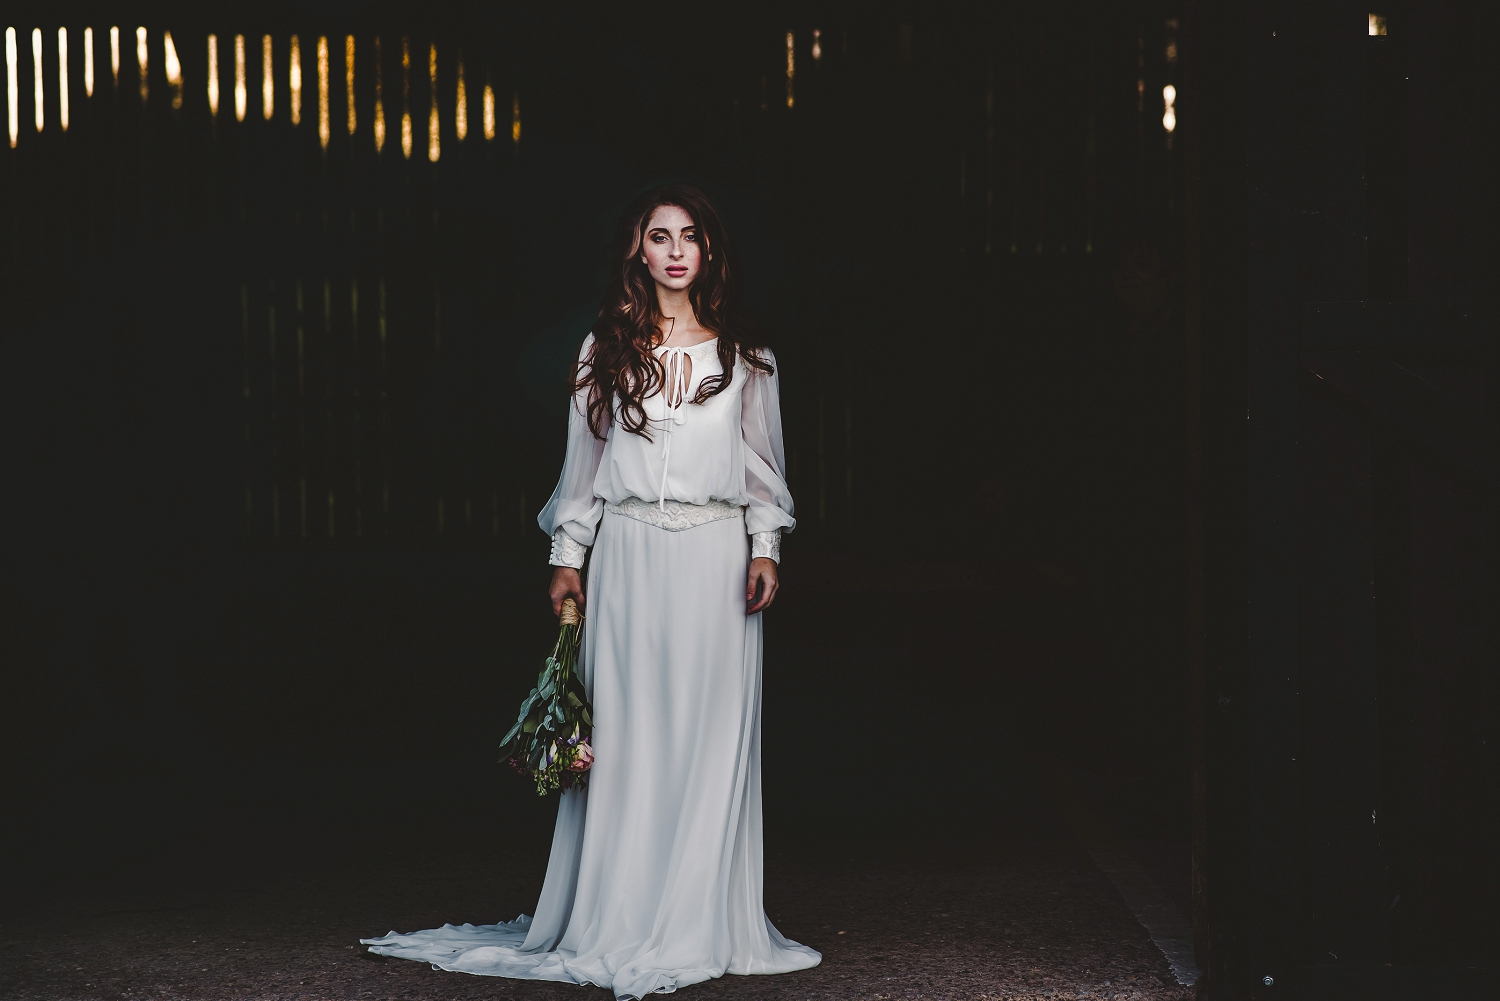 Curradine_bridal_Sept_17_amytiphoto_0113.jpg